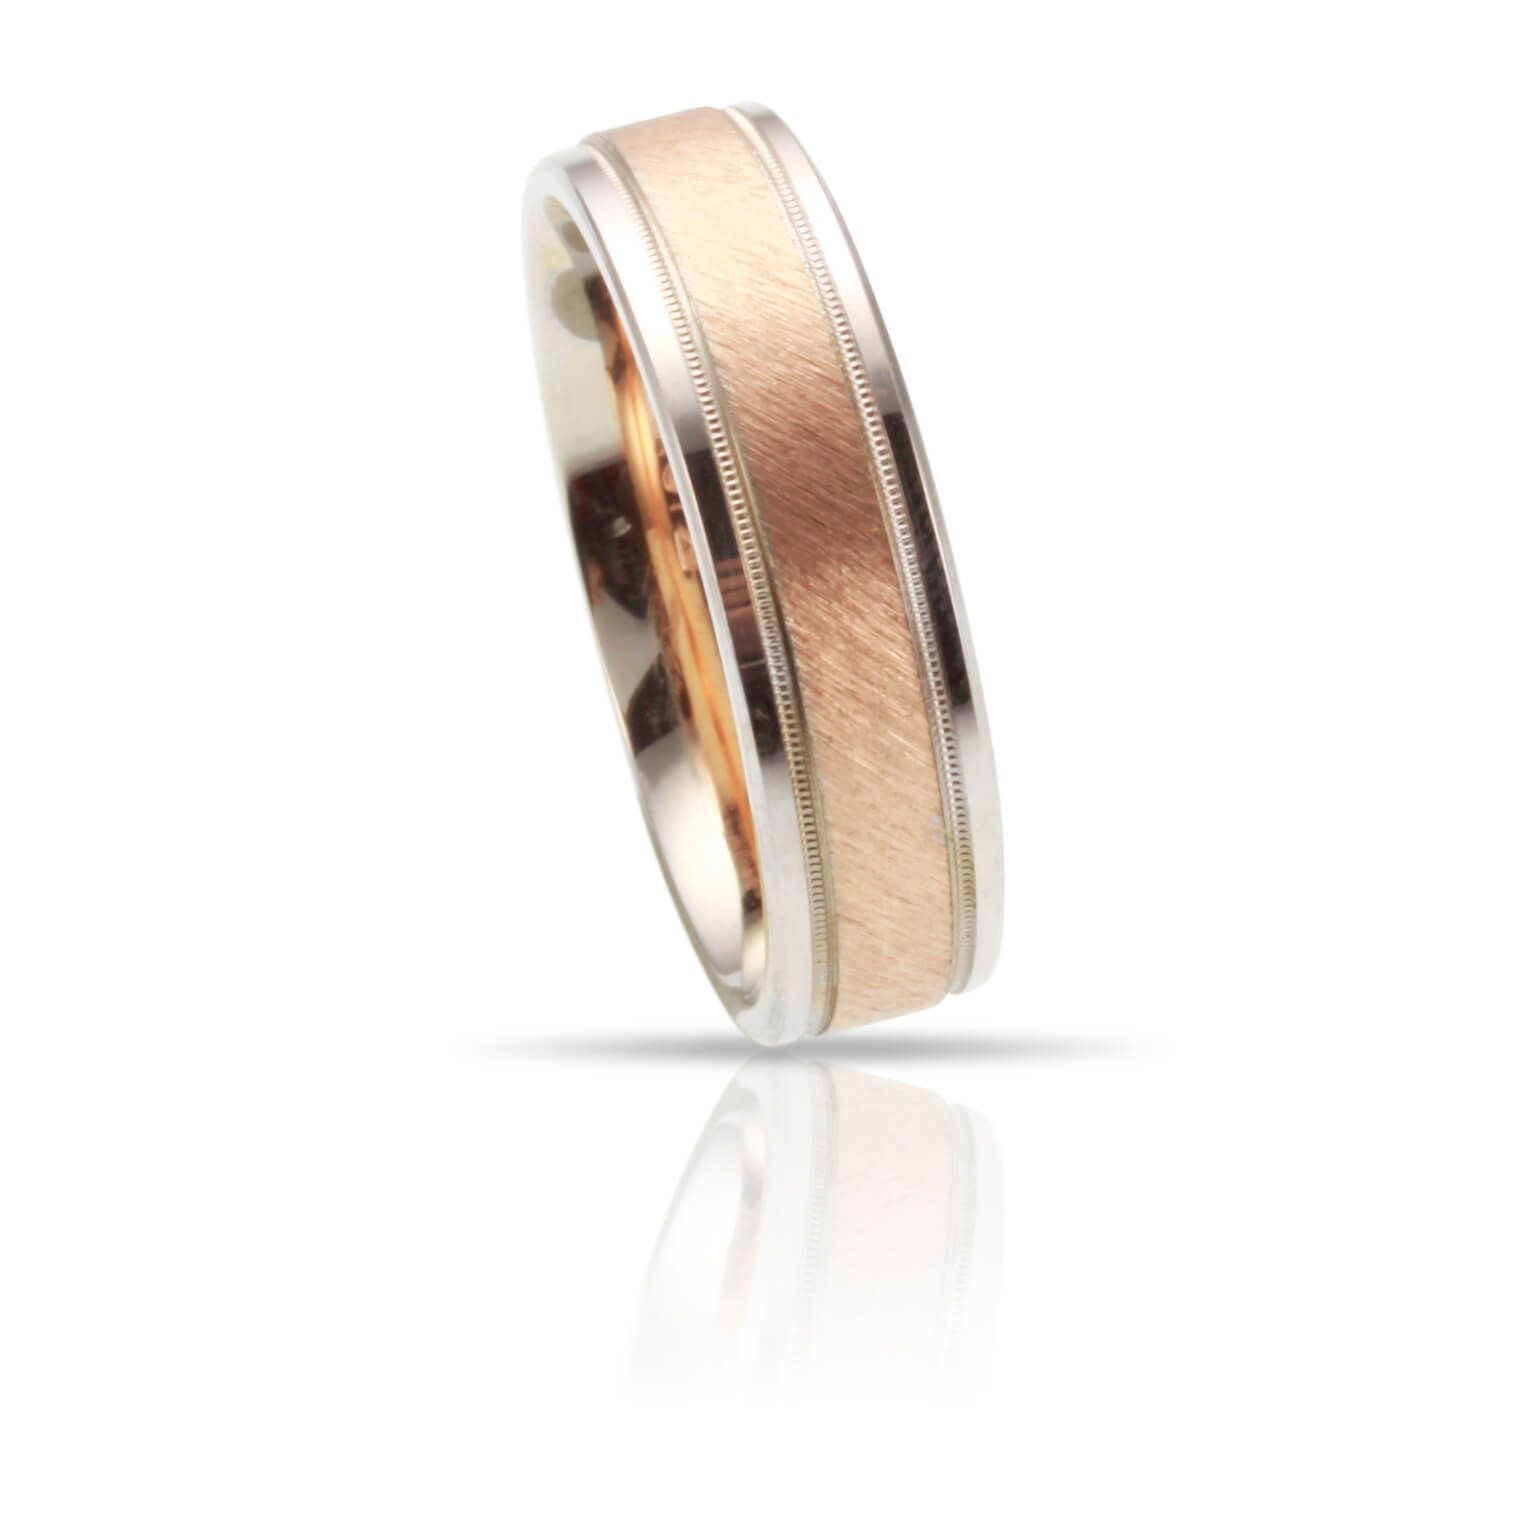 This 14k Two Tone Gold Wedding Band From Goldman Diana Features A